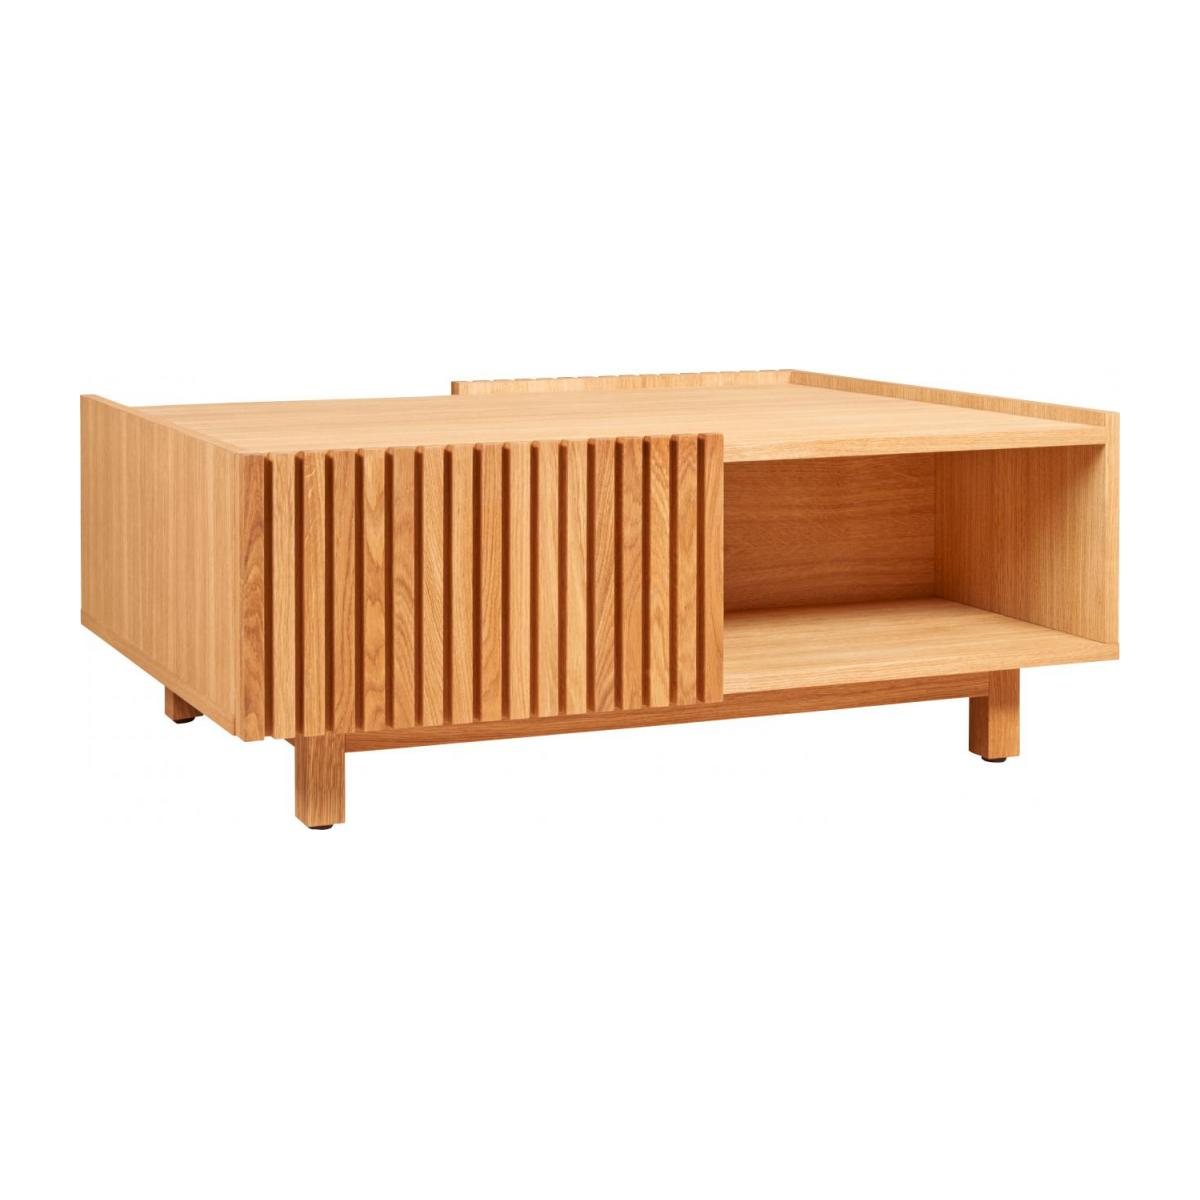 Oak low table n°1